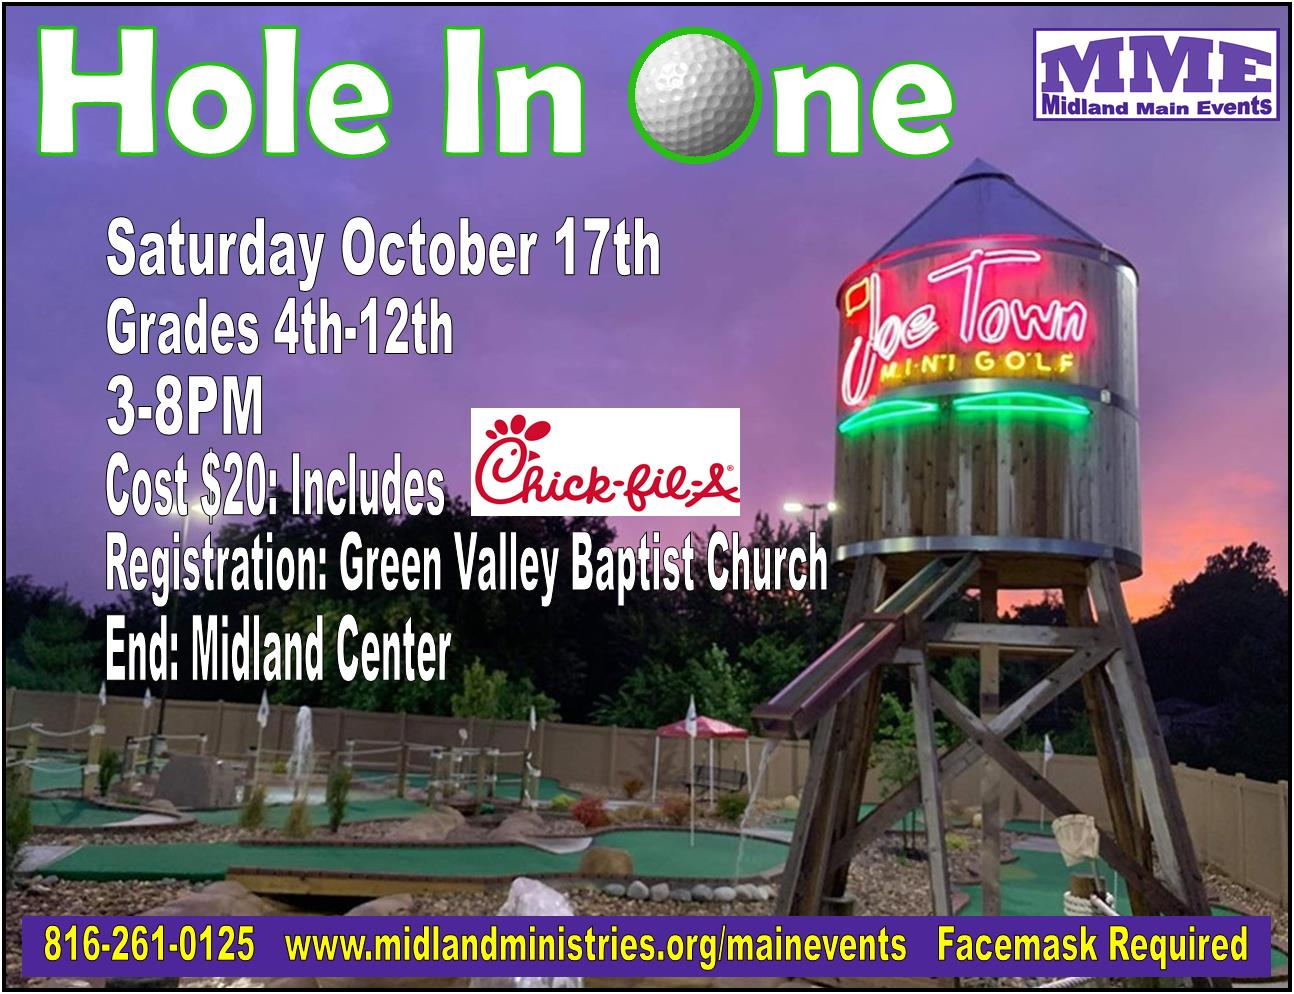 2020-10 Hole in One Flyer Updated